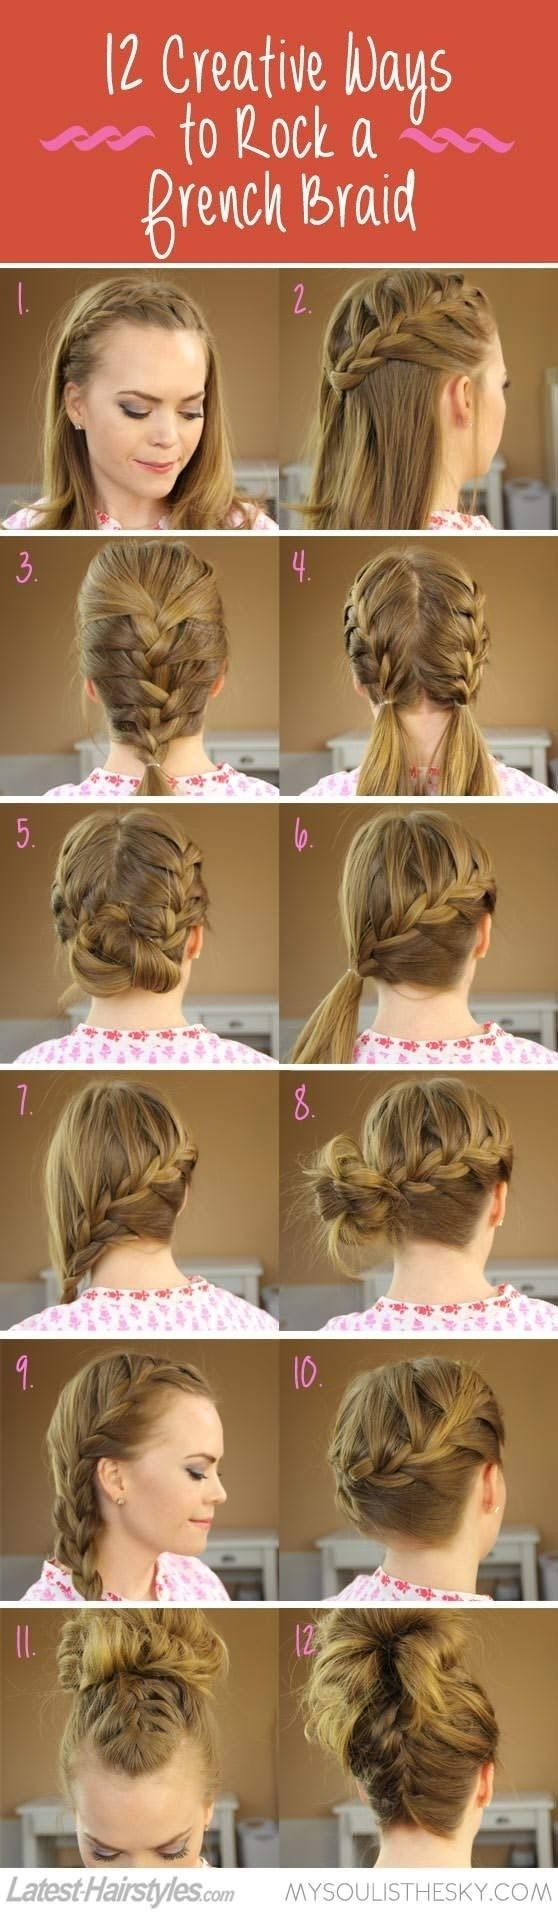 cute and easy braided hairstyle tutorials recipes to cook